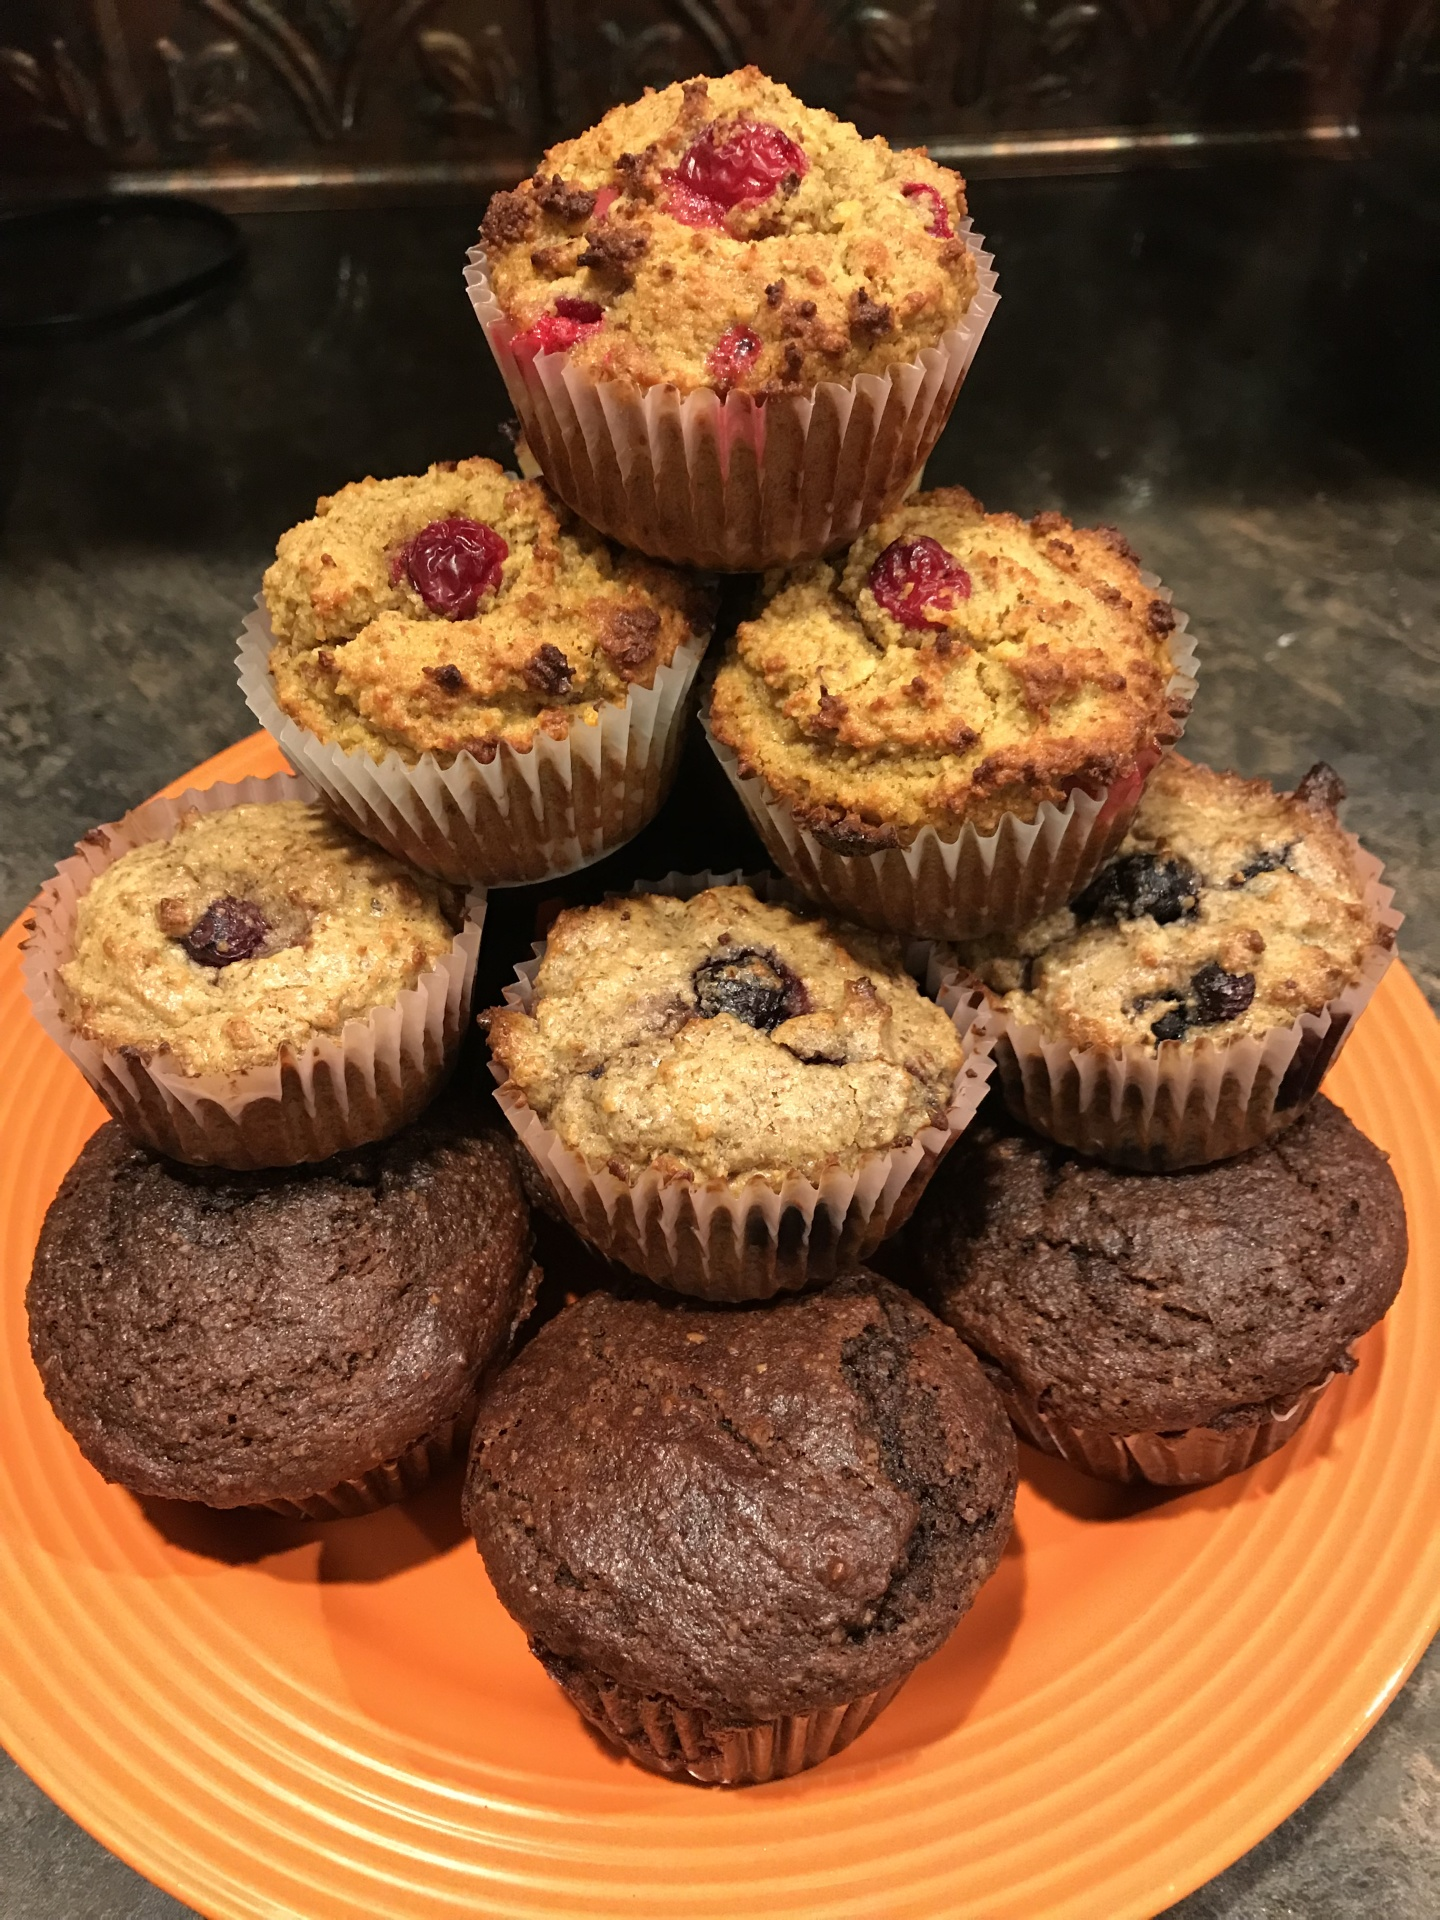 Best Keto Muffins Ever!